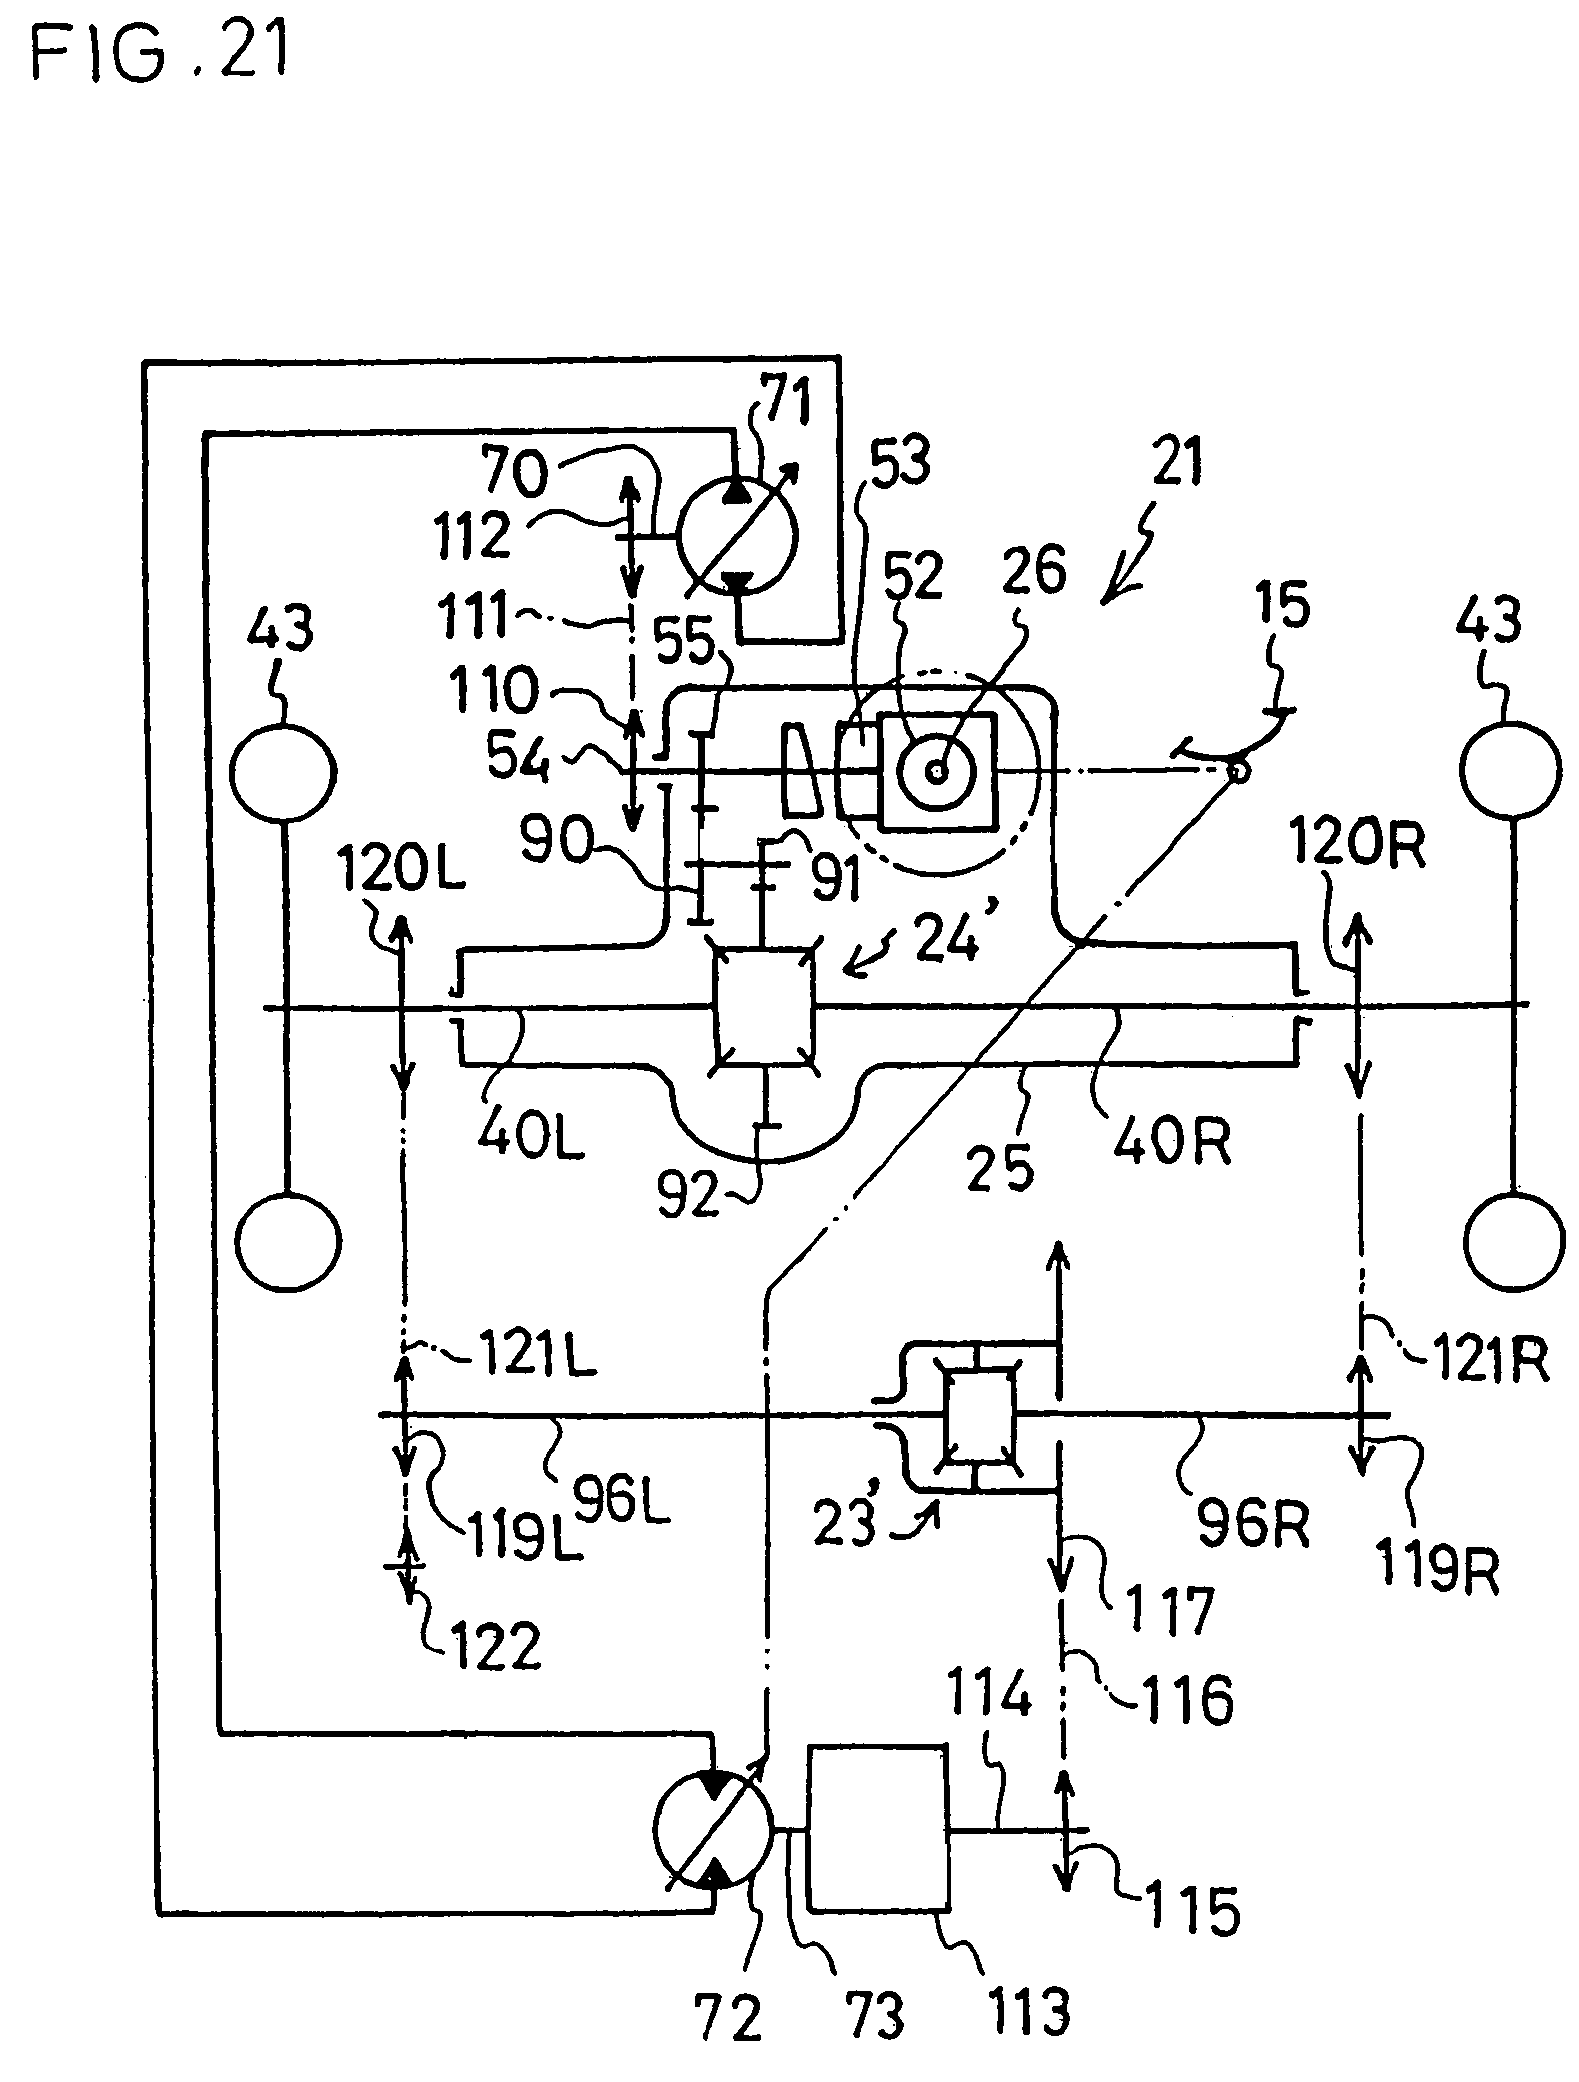 US7059433 likewise Daf xf 105 space cabin together with Toro Wiring Diagrams furthermore File Centrifugal governor and balanced steam valve  New Catechism of the Steam Engine  1904 further SEBP13520472. on tractor unit